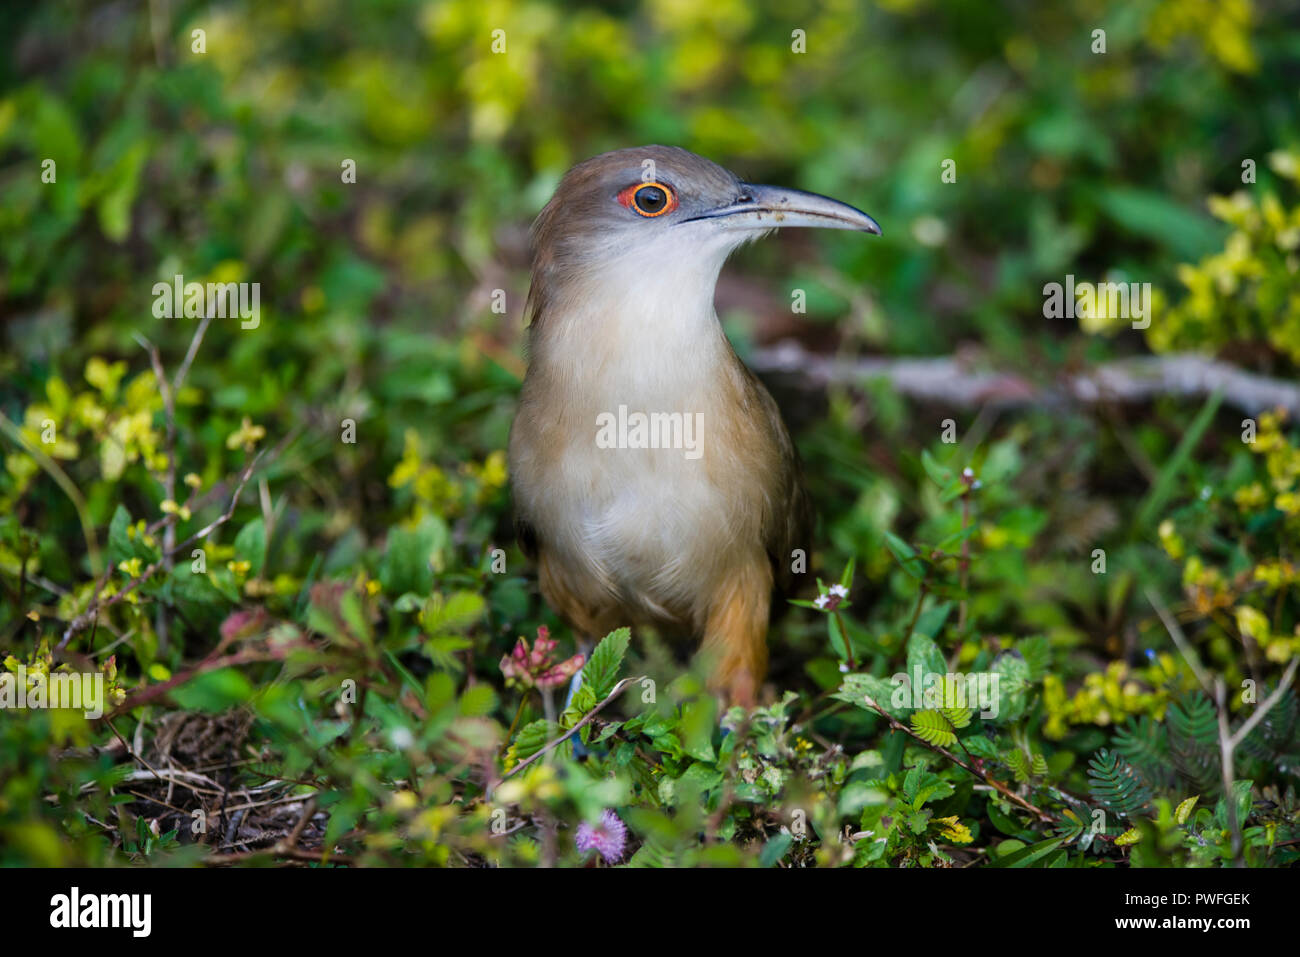 A Great Lizard-Cuckoo (Coccyzus merlini) hunting on the ground for insects. Bermejas Forest Reserve, Cuba. - Stock Image